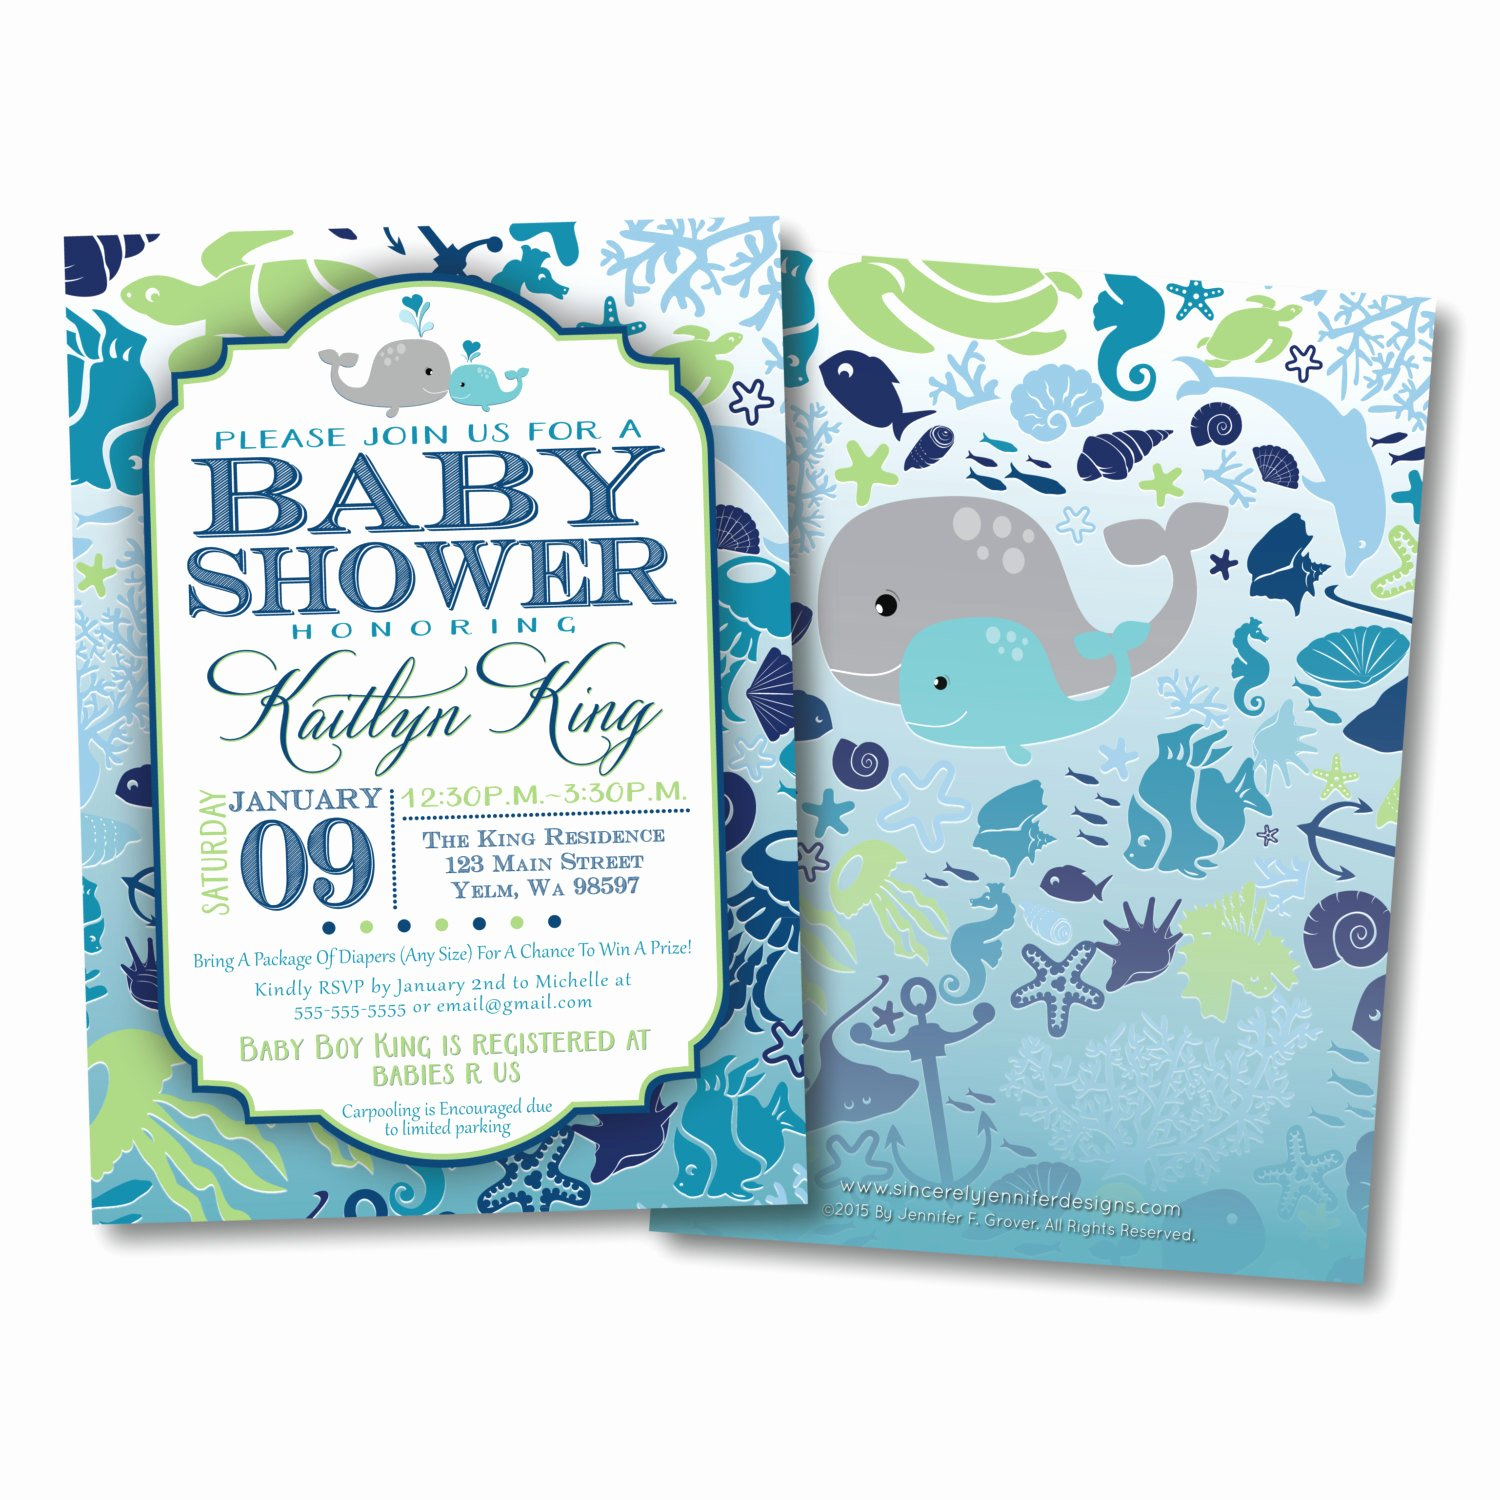 Baby Boy Invitations Free Fresh Under the Sea Baby Shower Invitation Diy by sincerelyjennifer